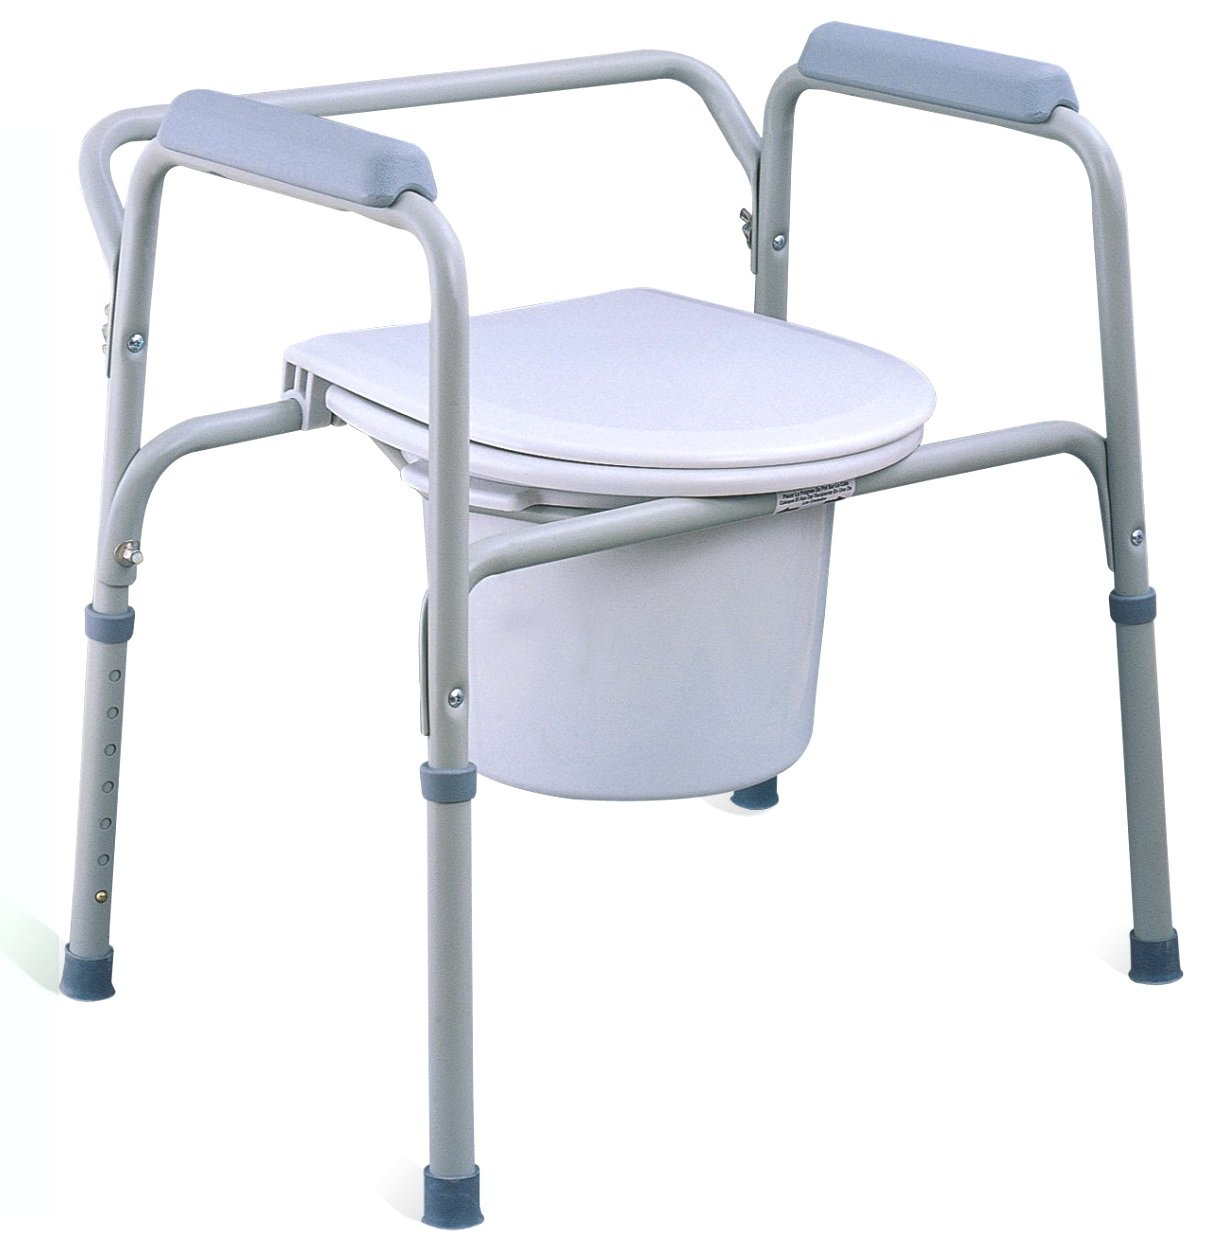 Economical Steel Three-in-one Commode Chair Without Wheels - Buy ...